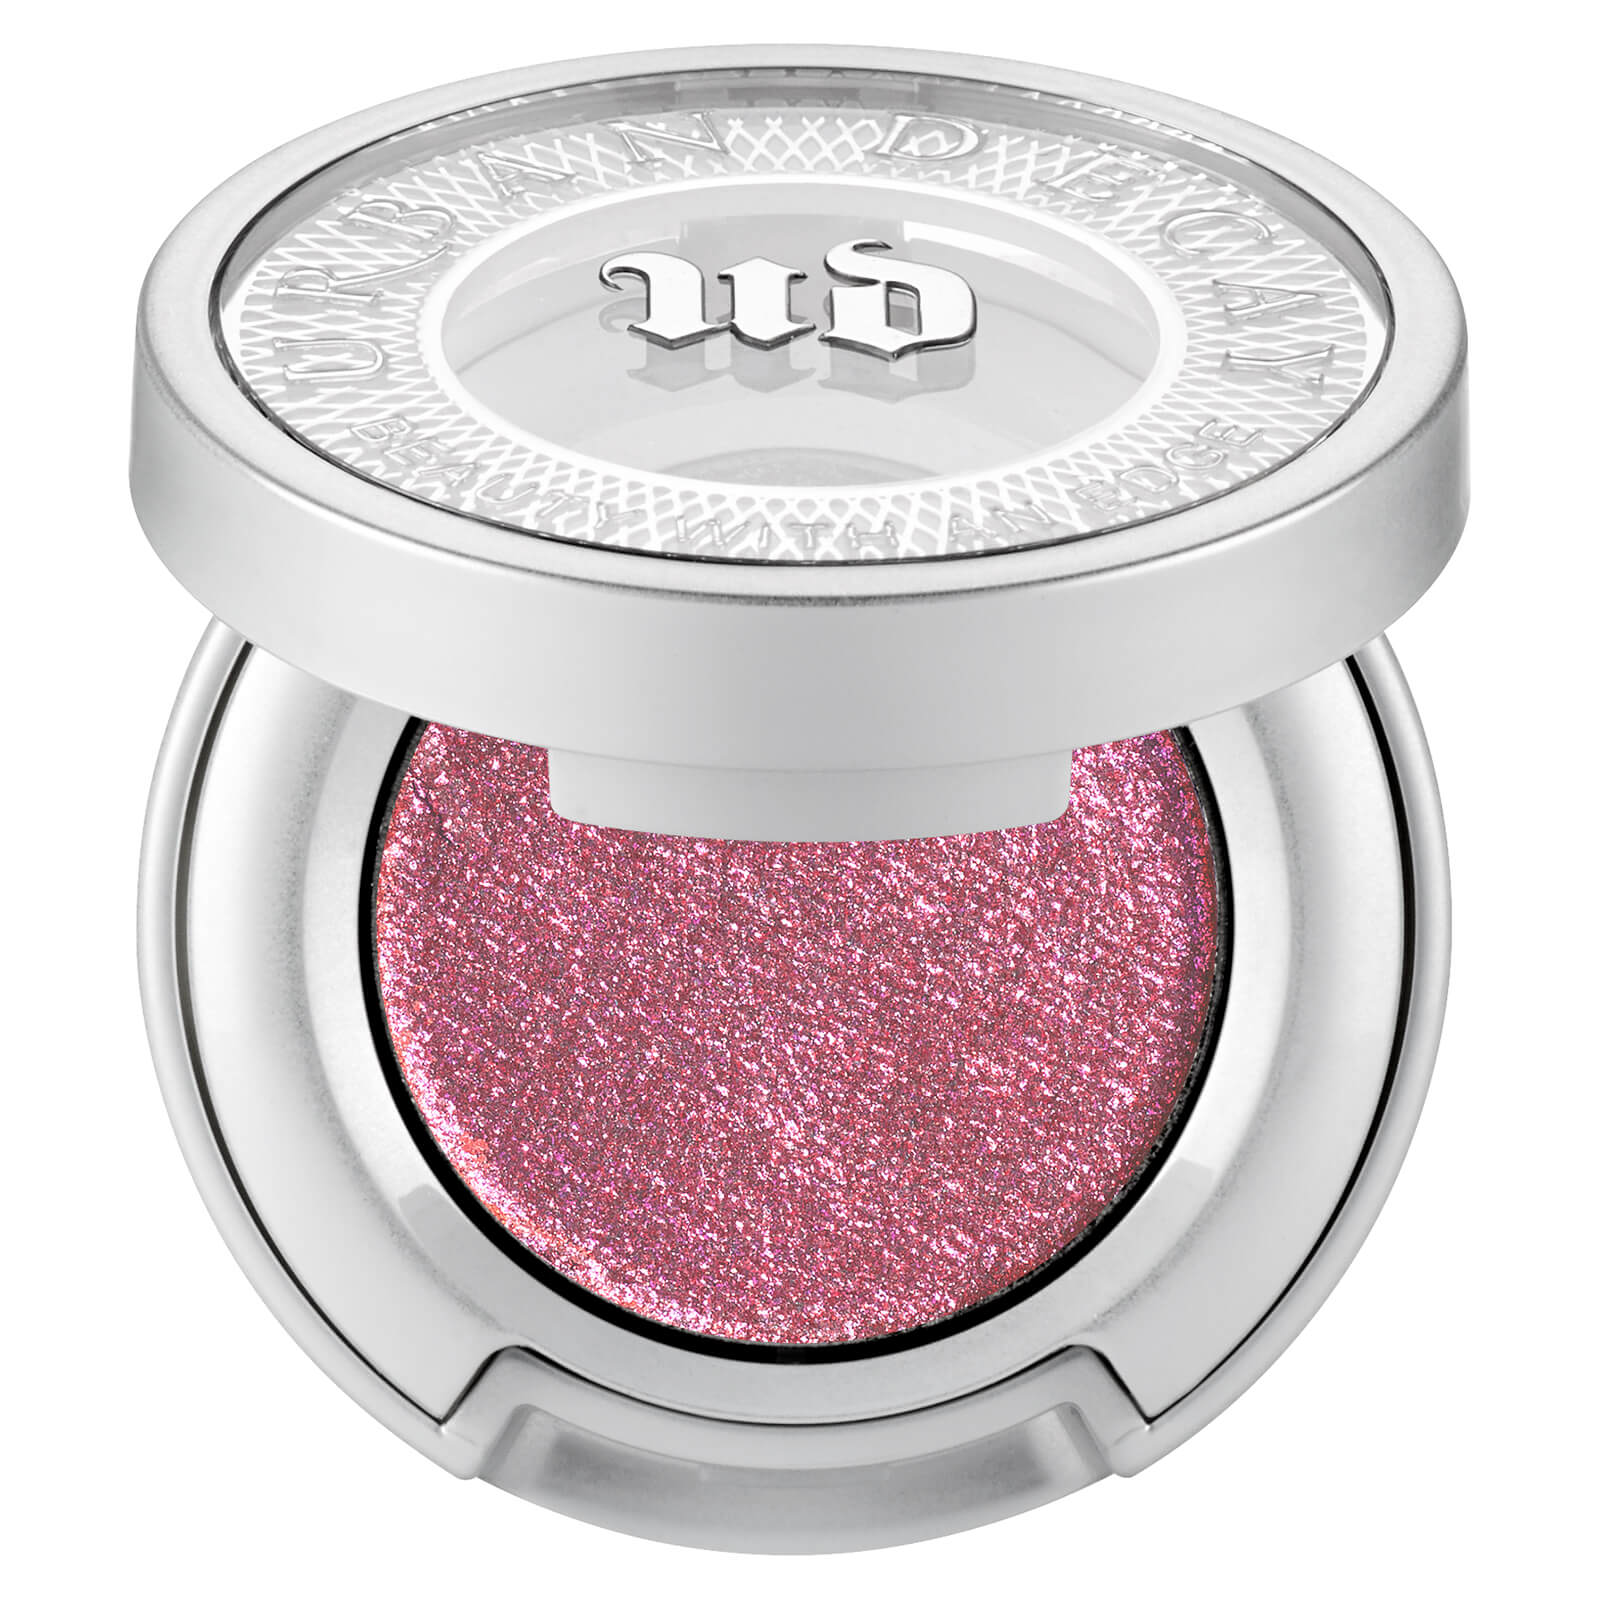 Urban Decay Moondust Eyeshadow 1 5g (Various Shades)